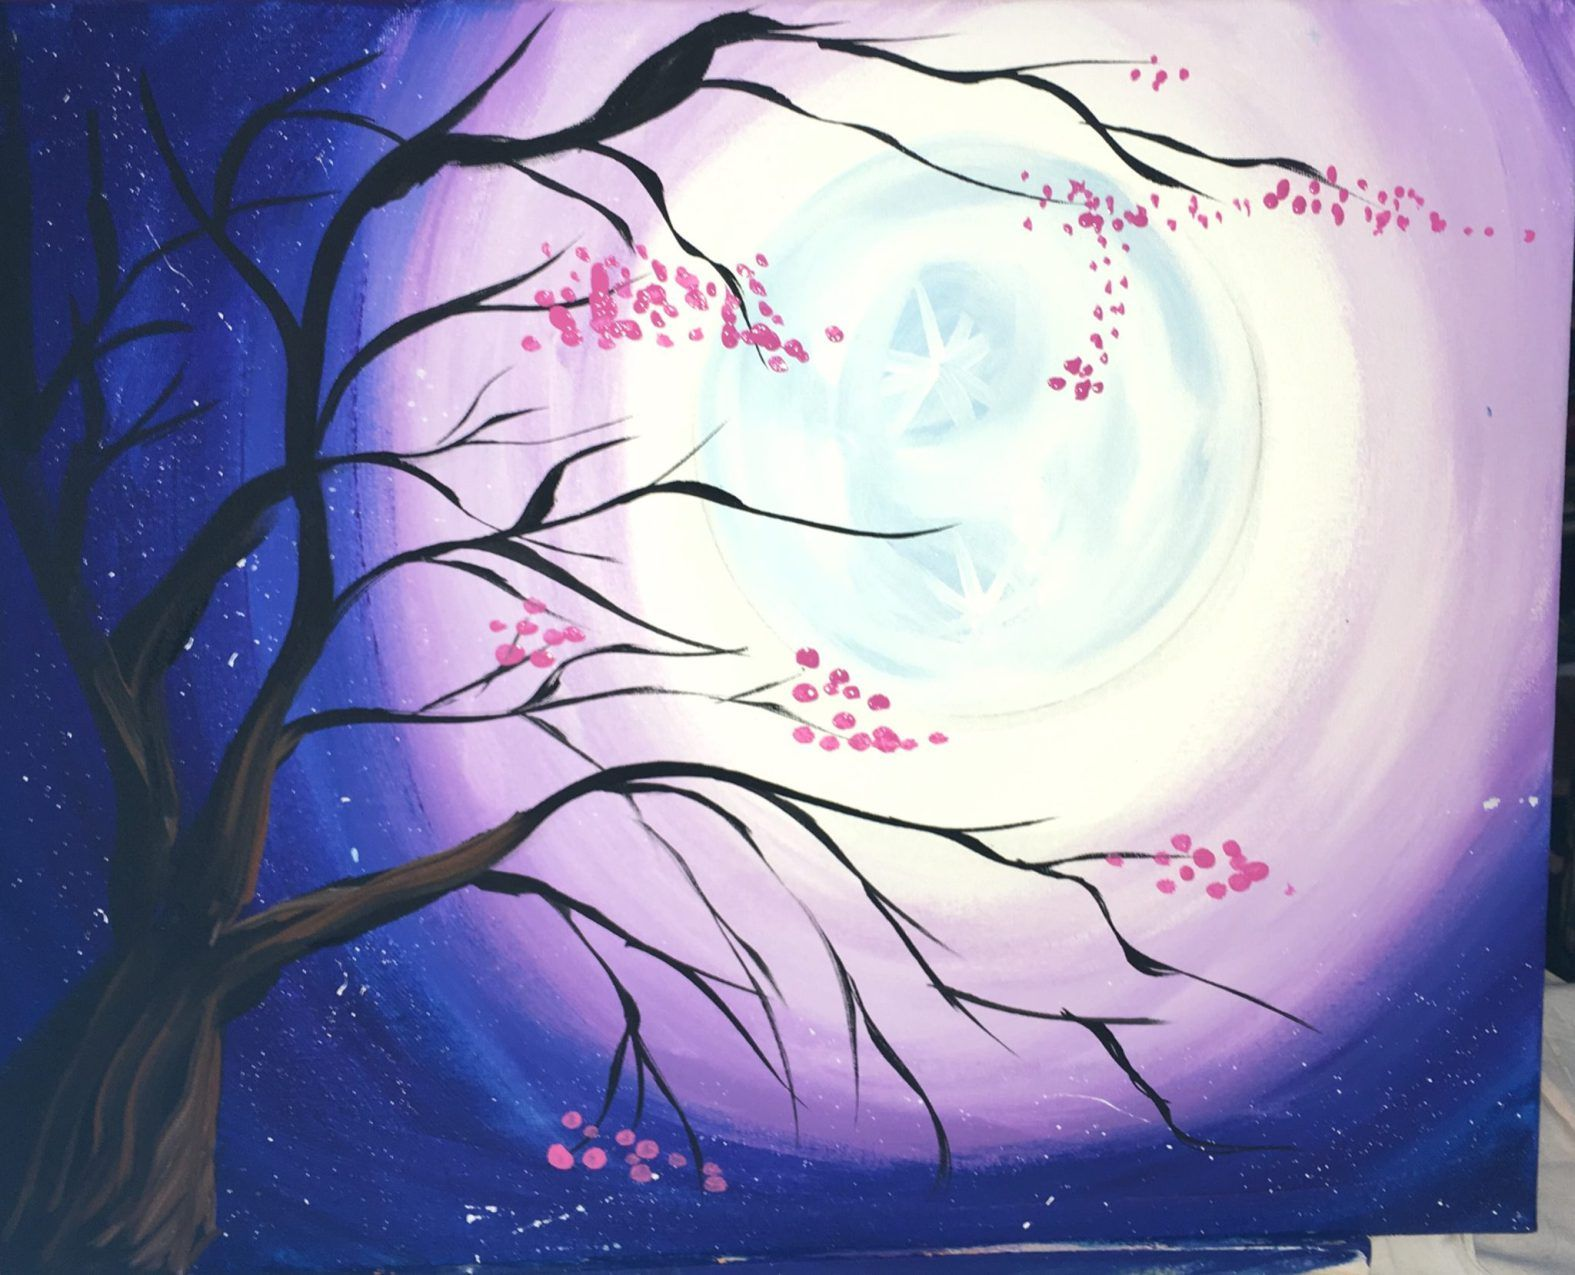 Easy Canvas Painting For Beginners Step By Step Sakura Means Cherry Blossom In Japan Cherry Blossom Painting Acrylic Cherry Blossom Painting Cherry Blossom Art